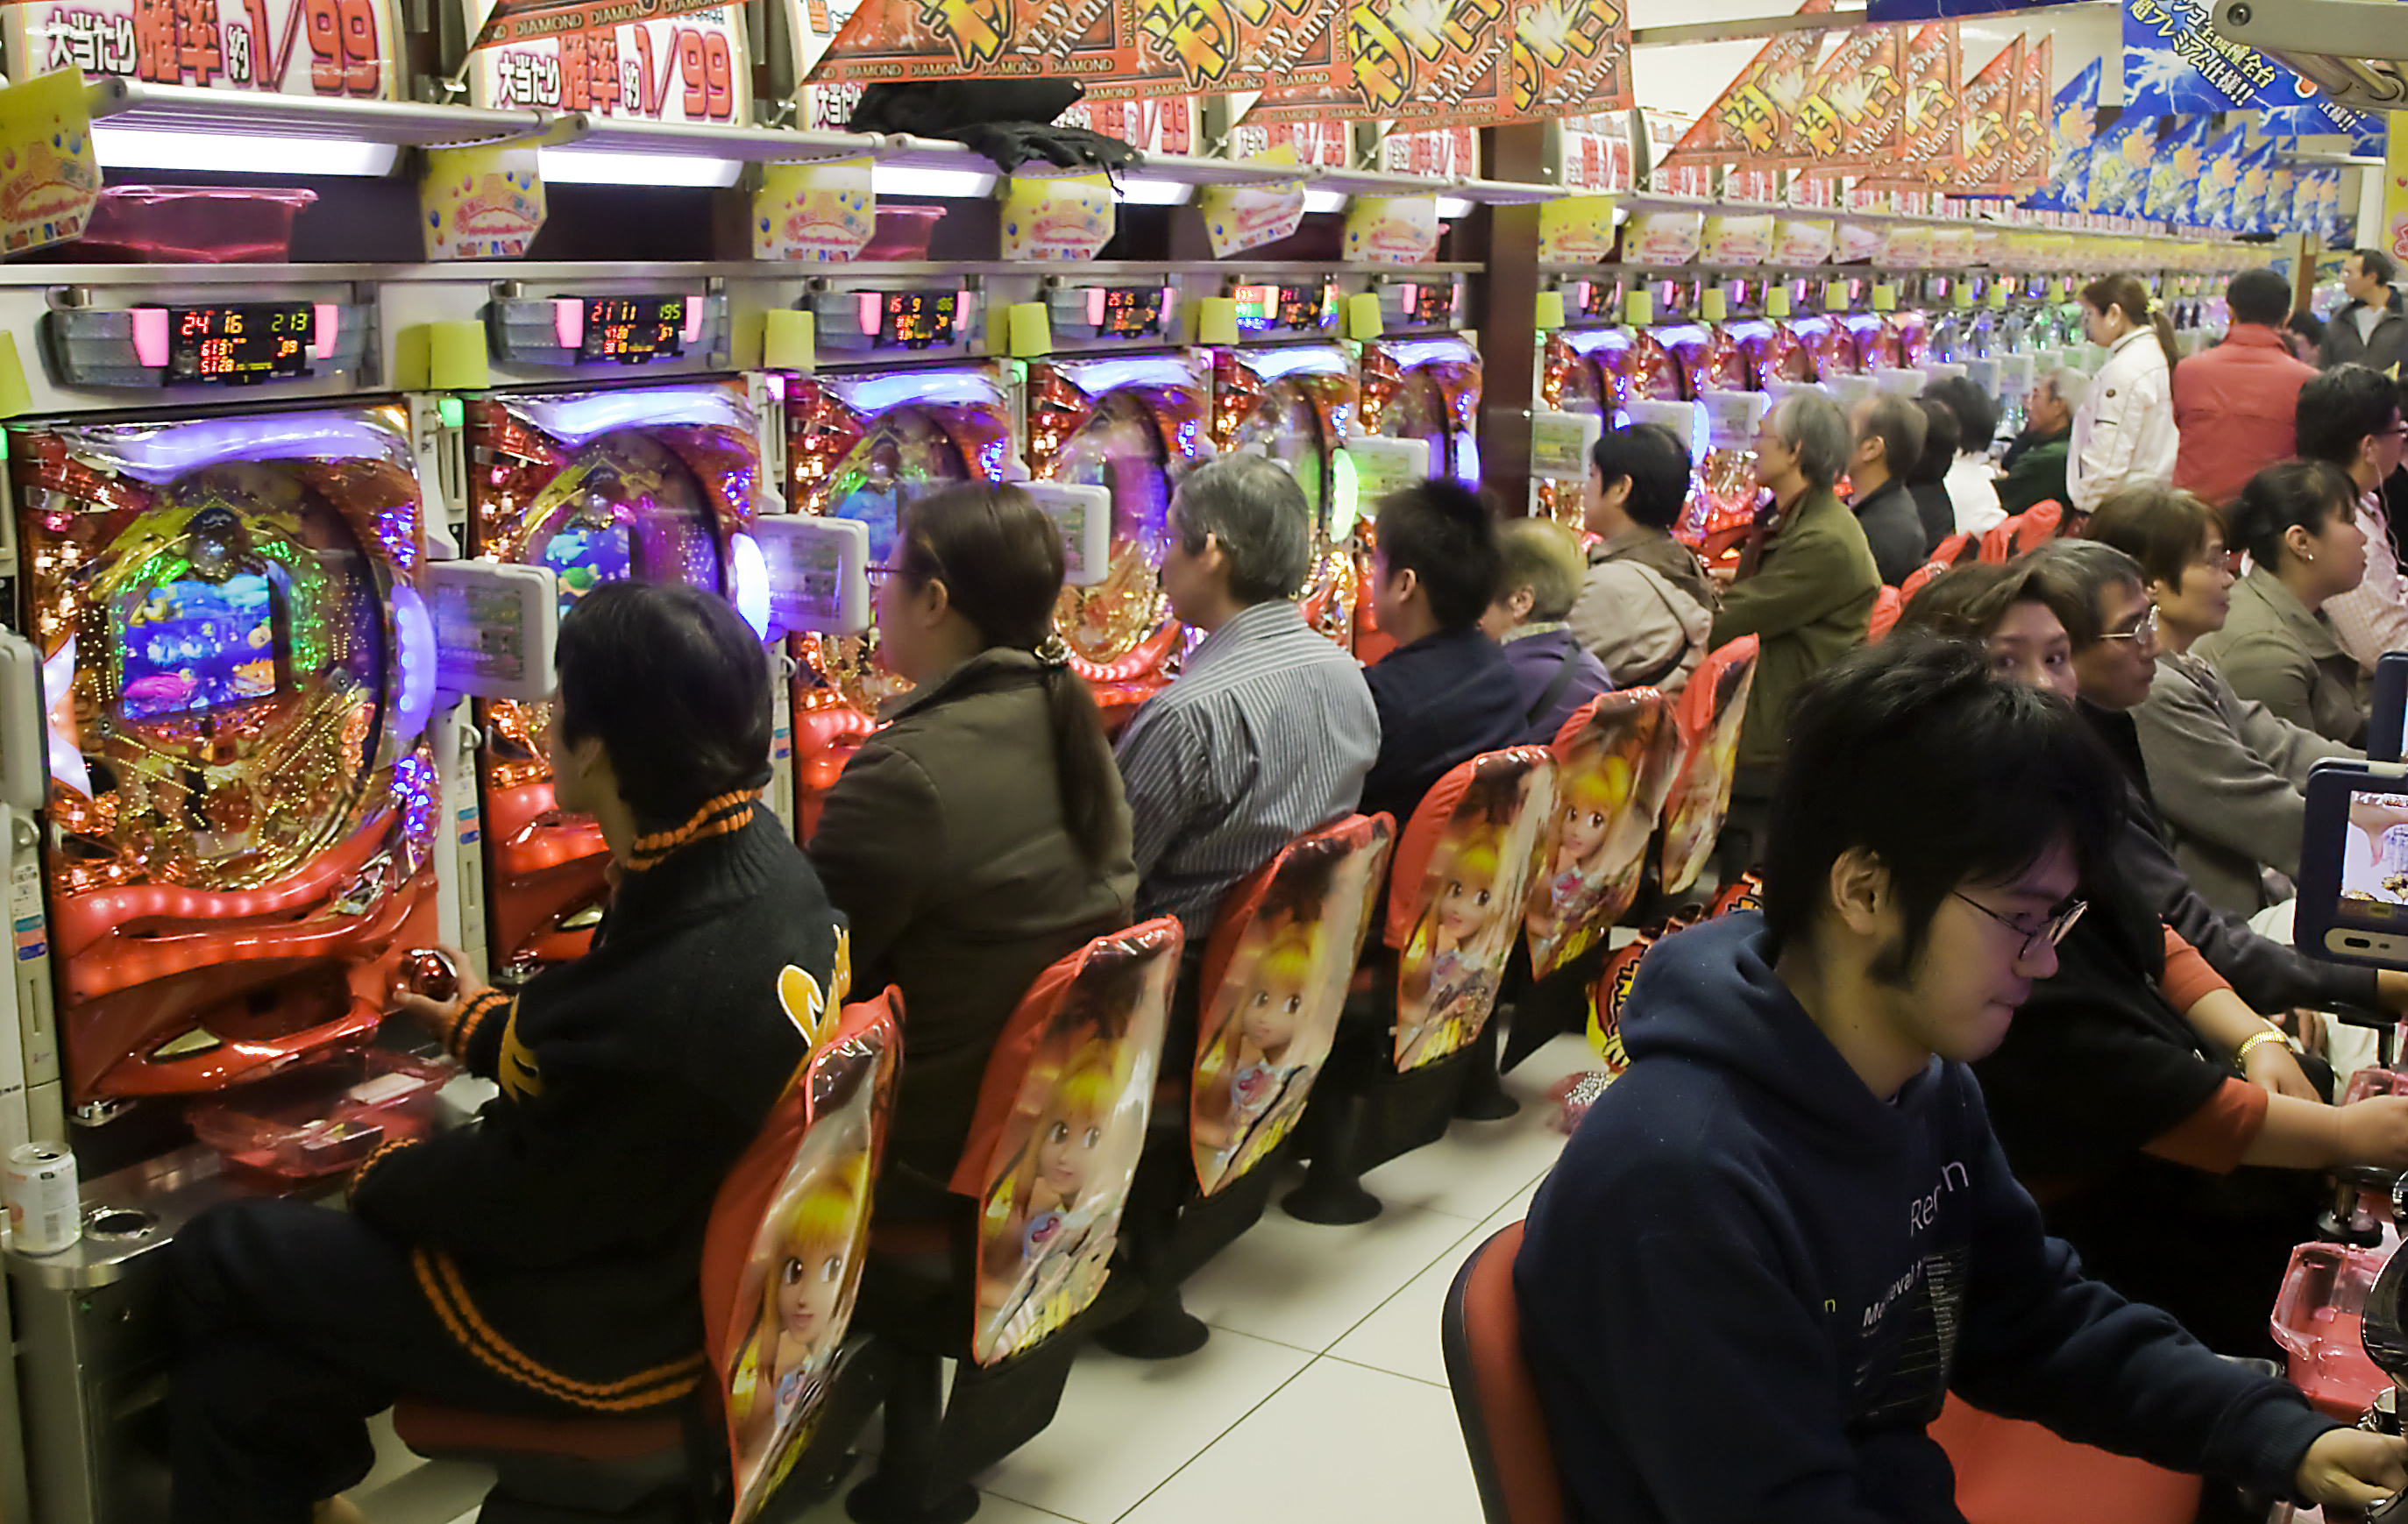 https://i0.wp.com/upload.wikimedia.org/wikipedia/commons/8/8b/Pachinko_parlour.jpg